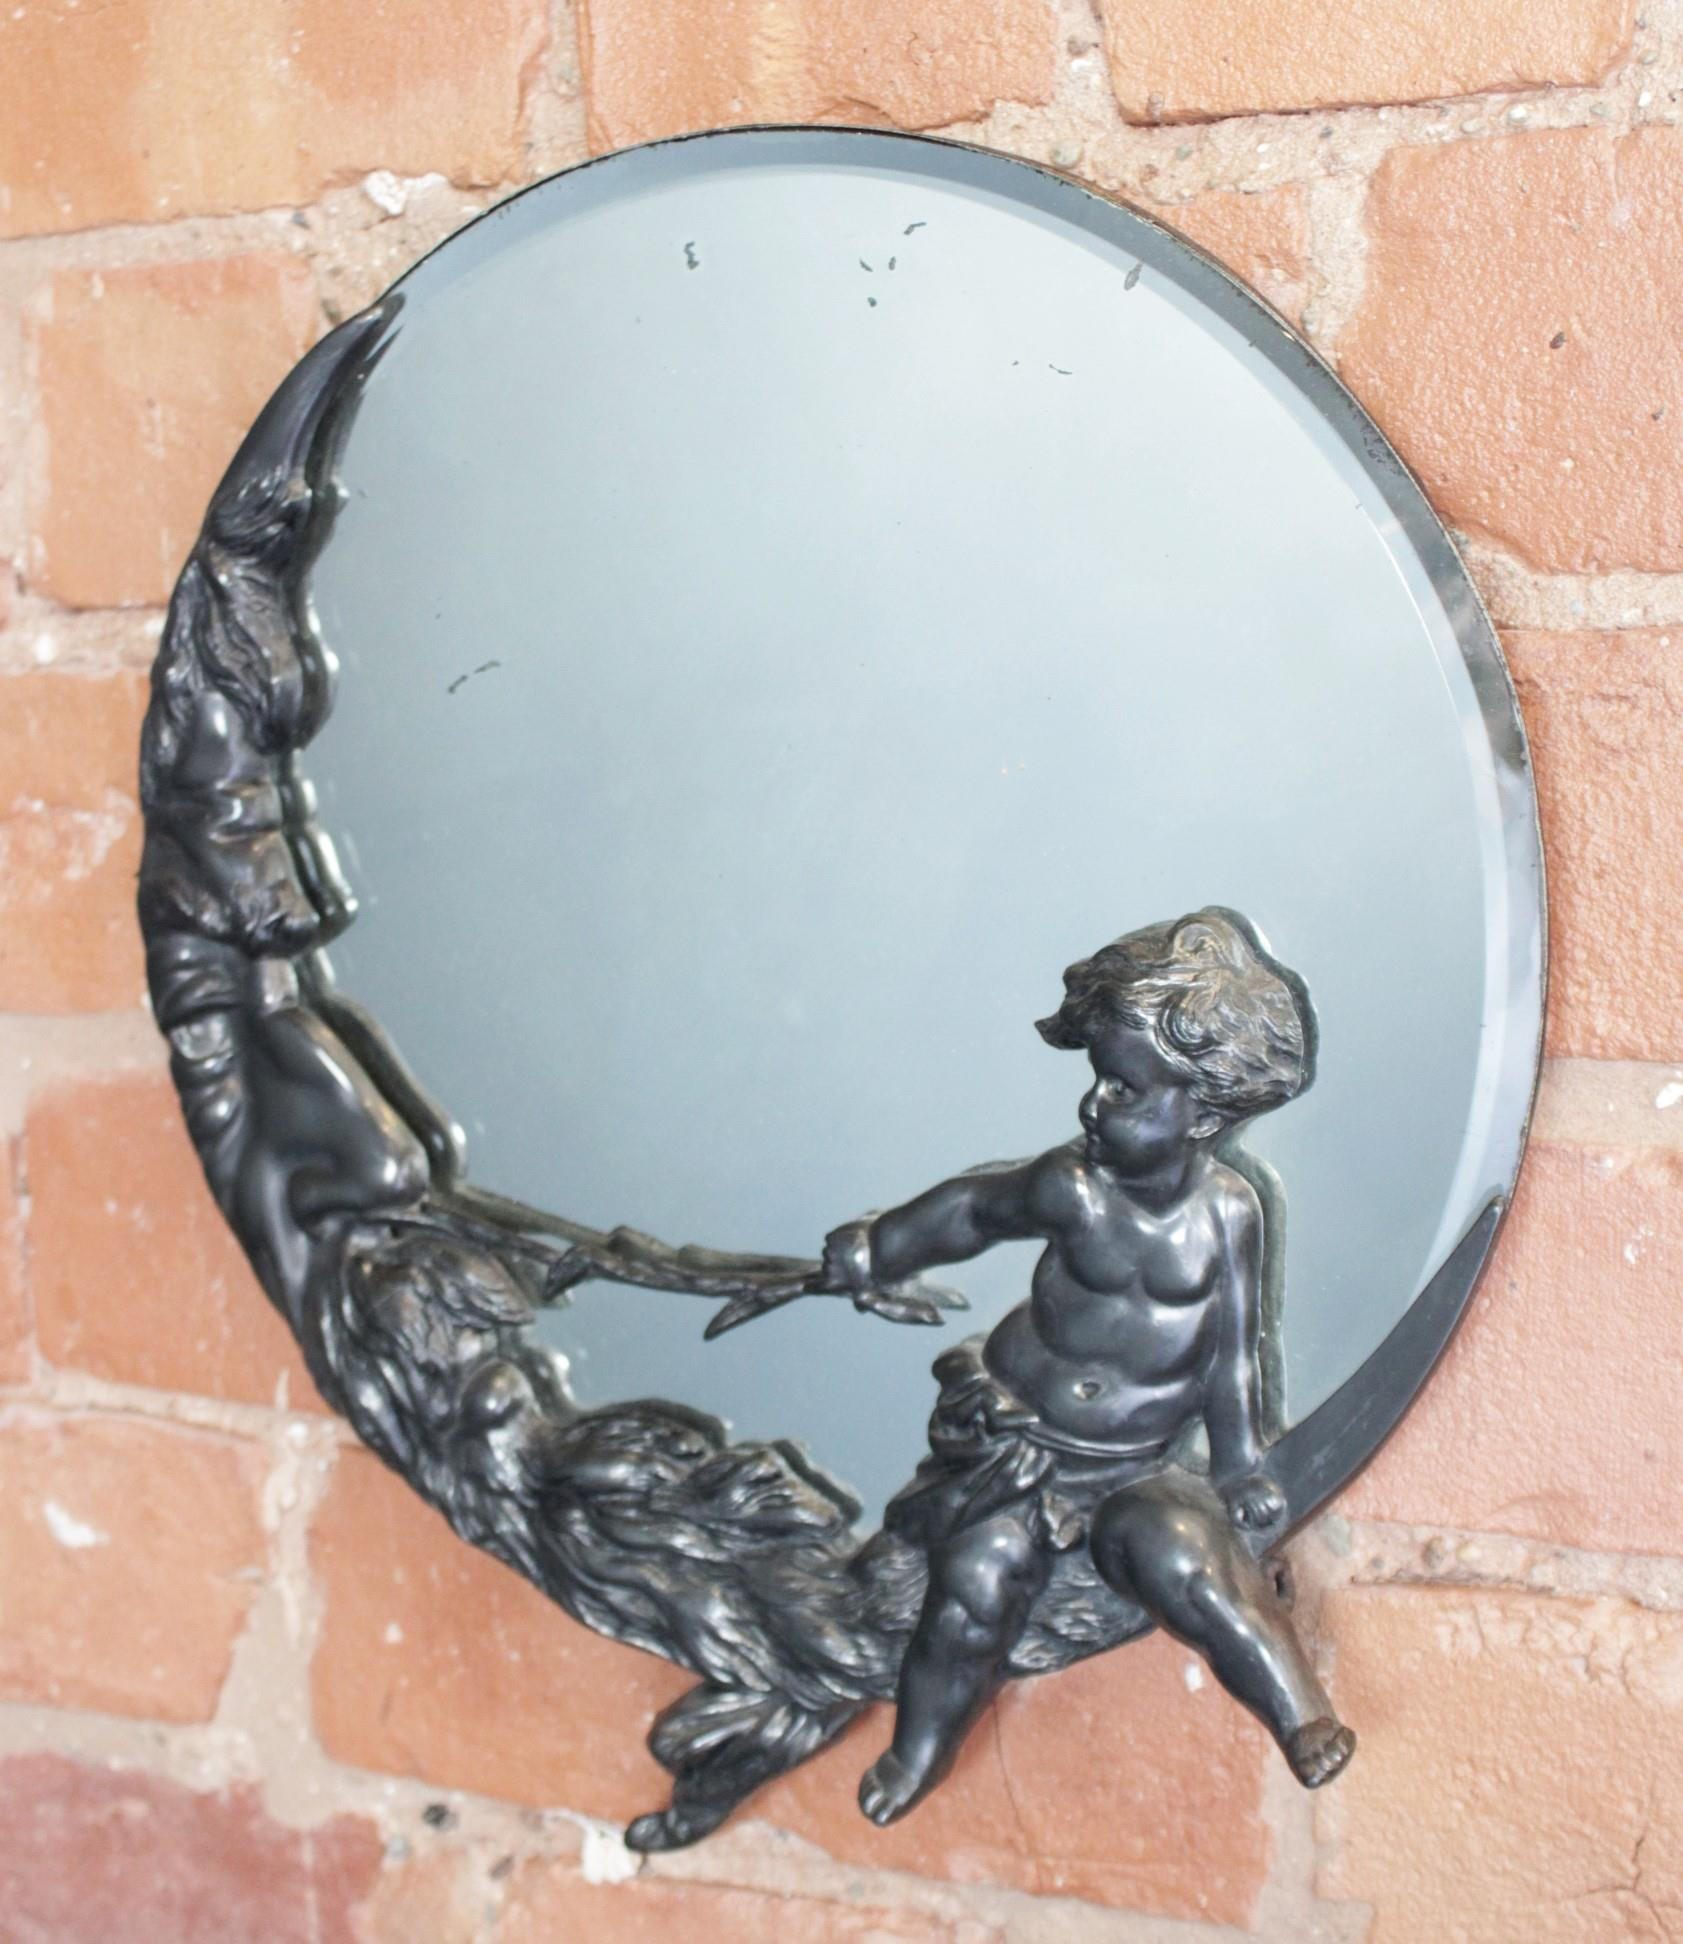 A pewter mounted Art Nouveau circular mirror, late 19th/early 20th century,